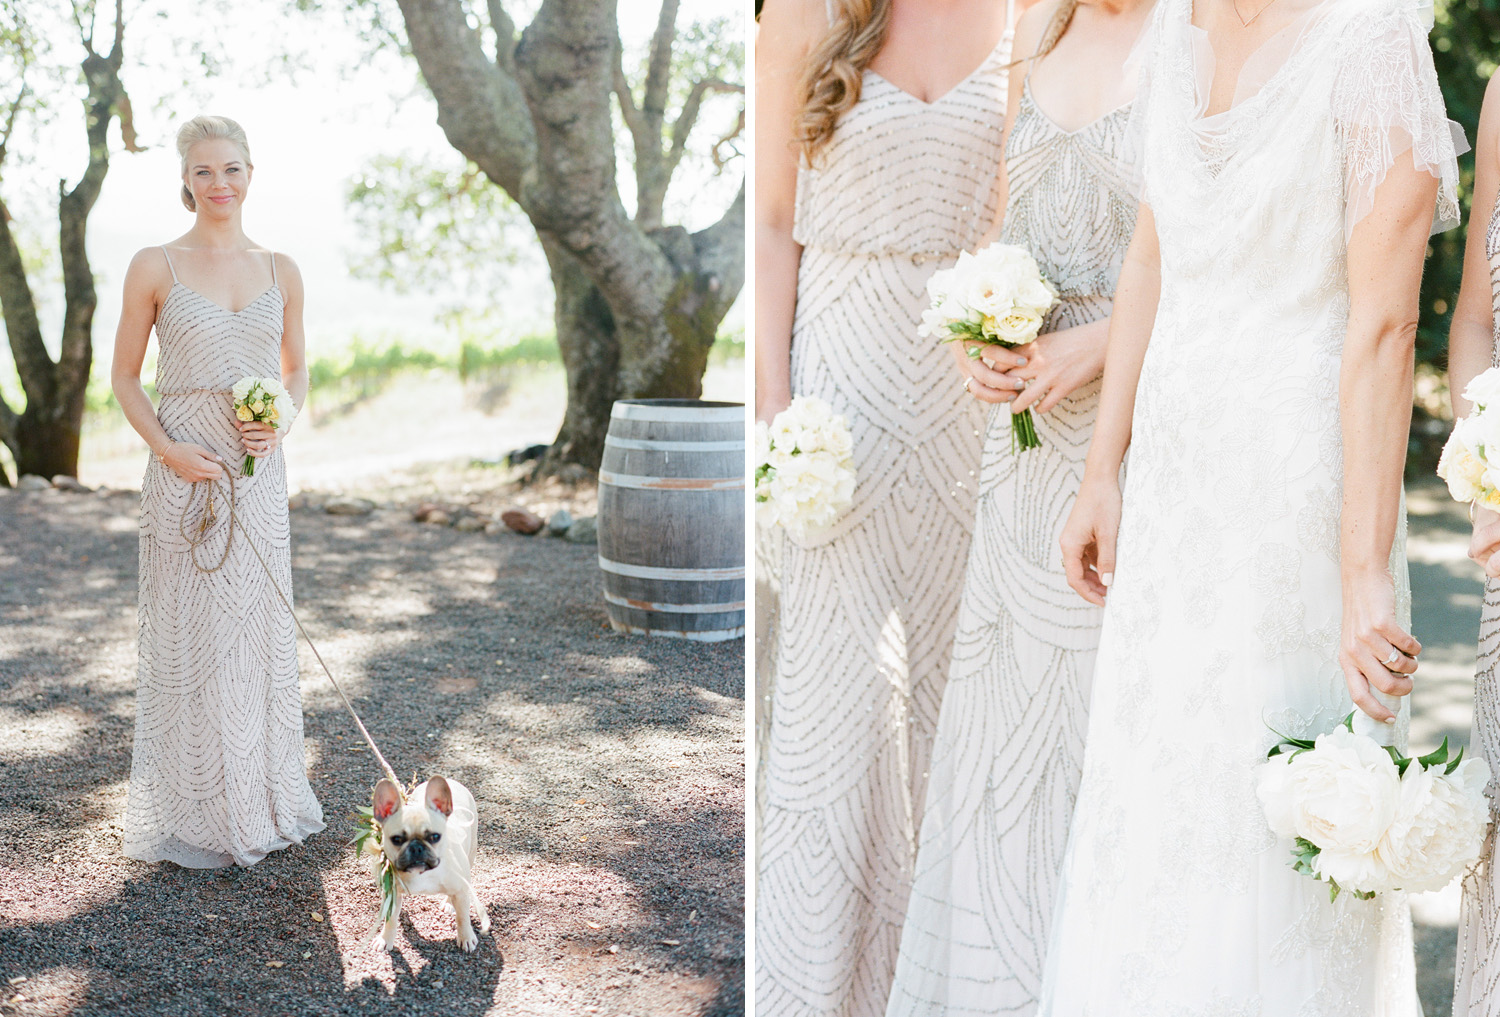 Sylvie-Gil-film-destination-wedding-photography-kunde-winery-napa-shabby-chic-french-bulldog